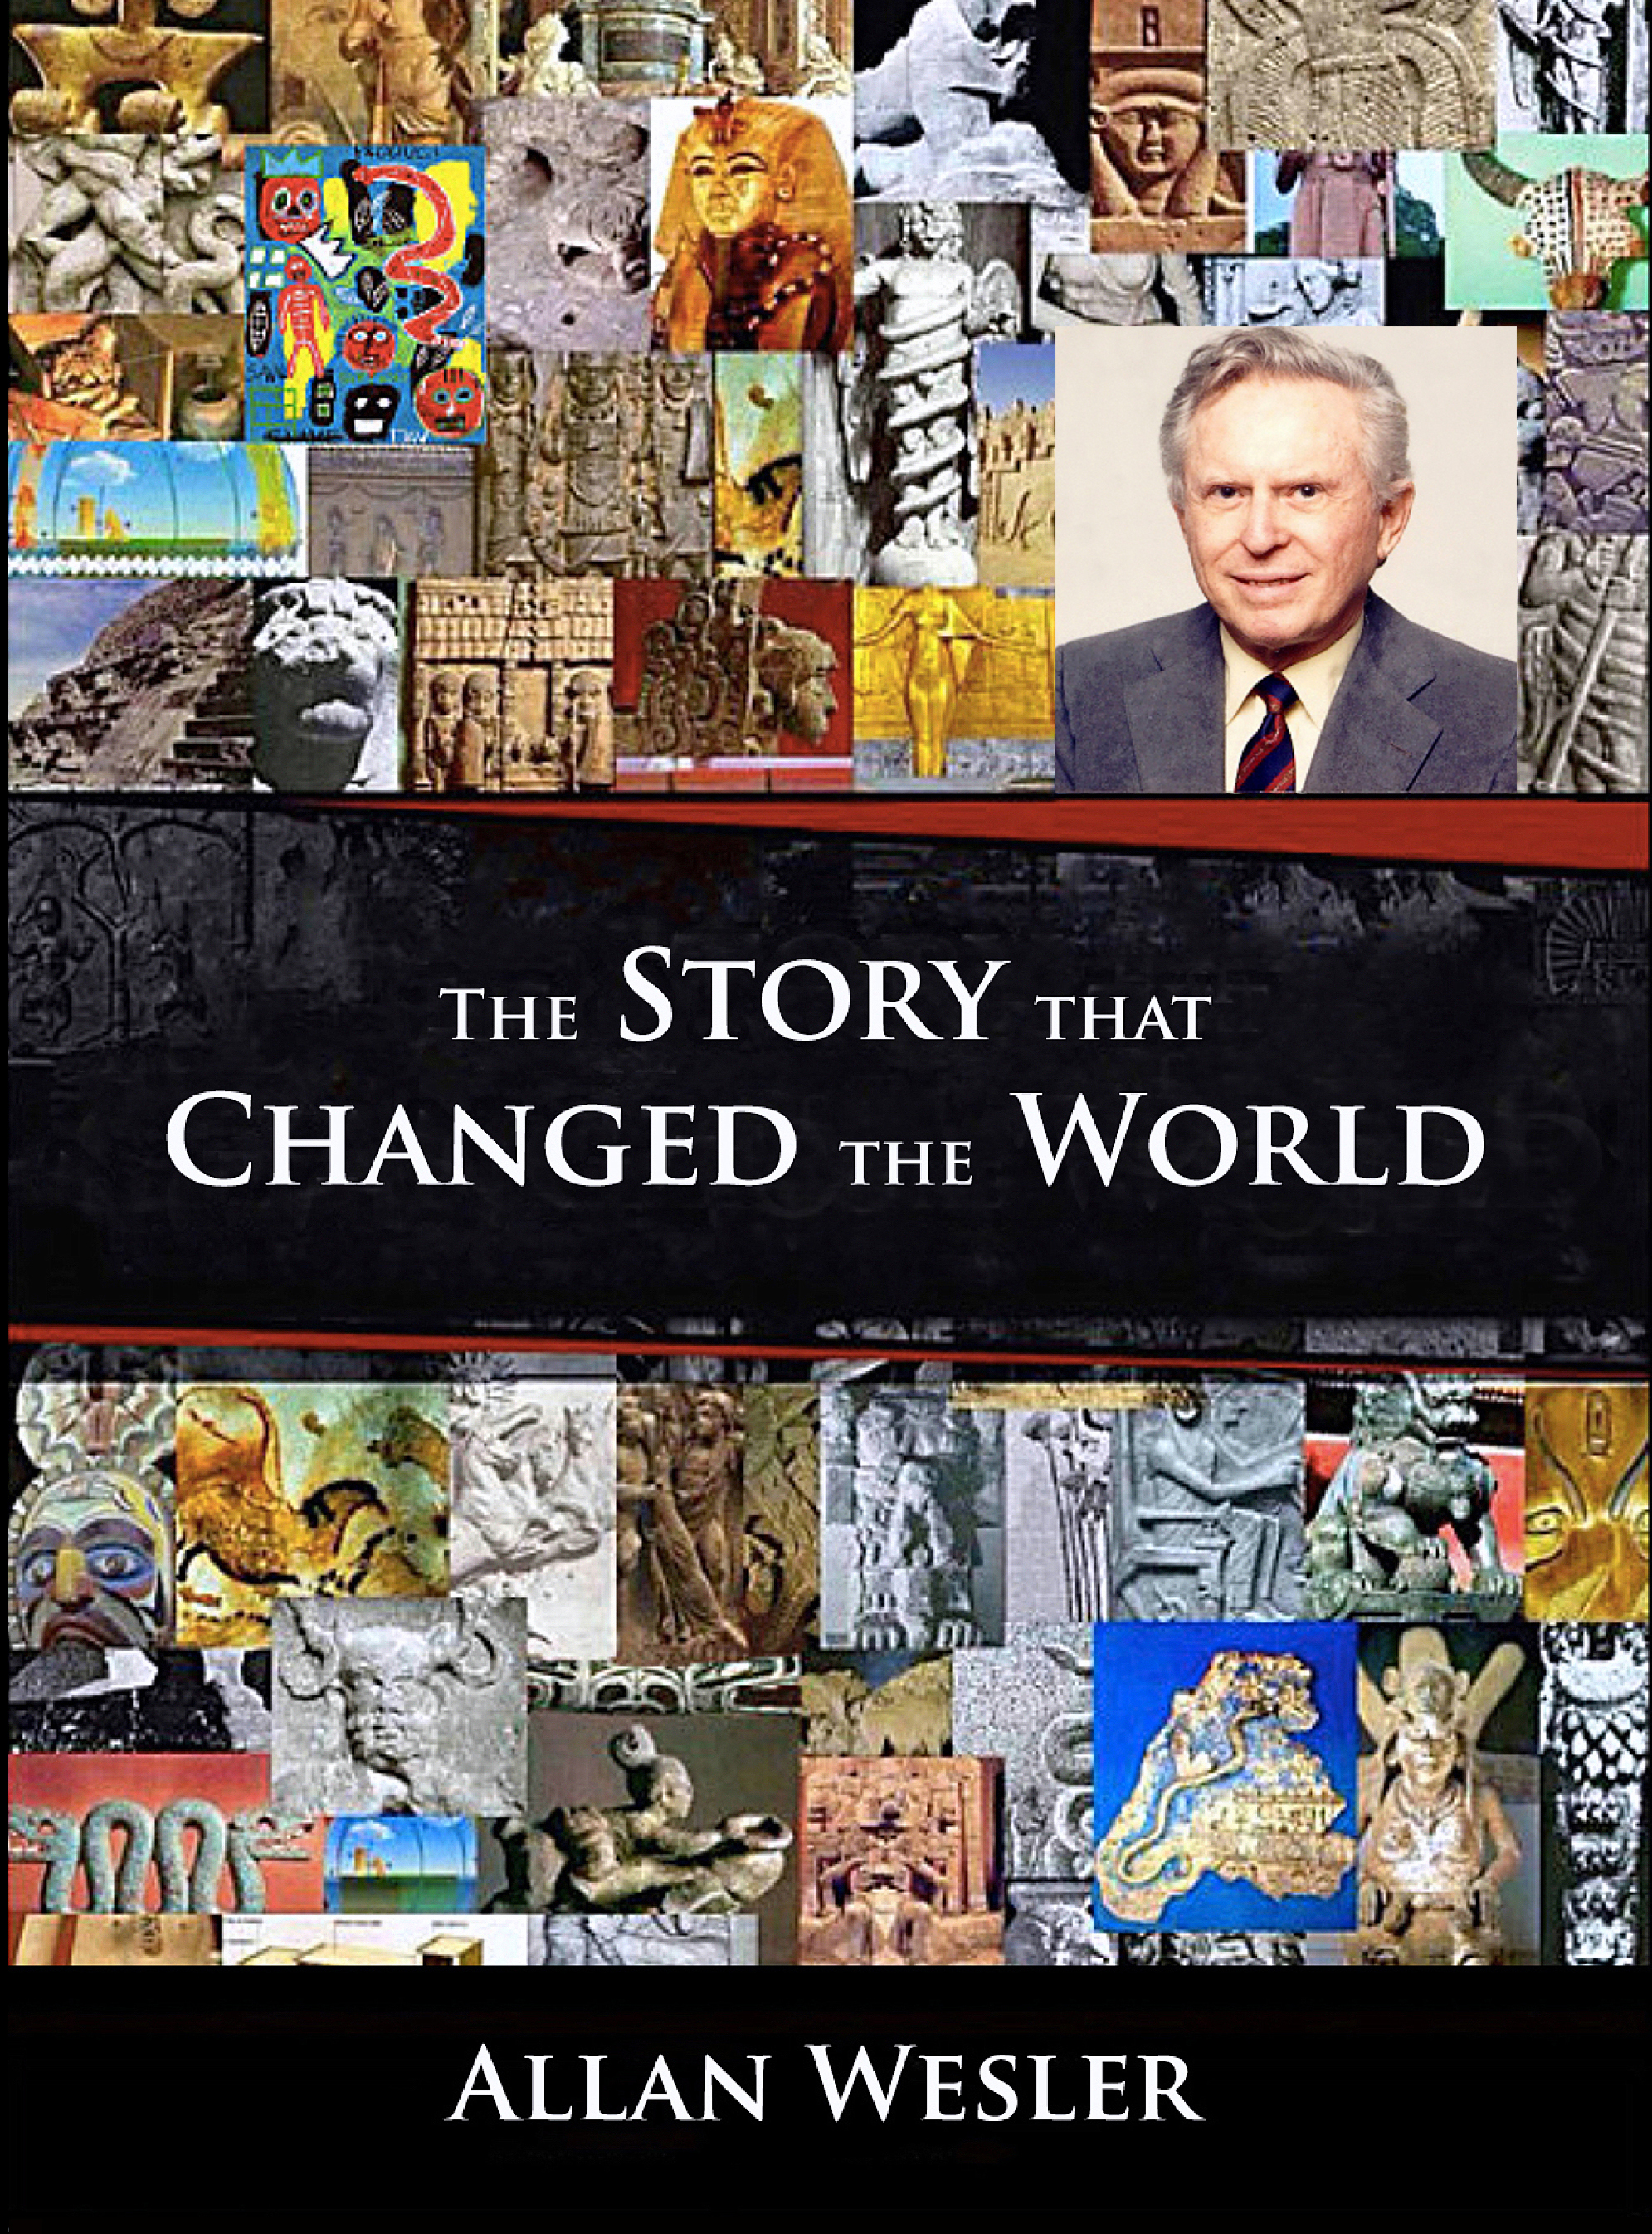 The Story that Changed the World Allan Wesler